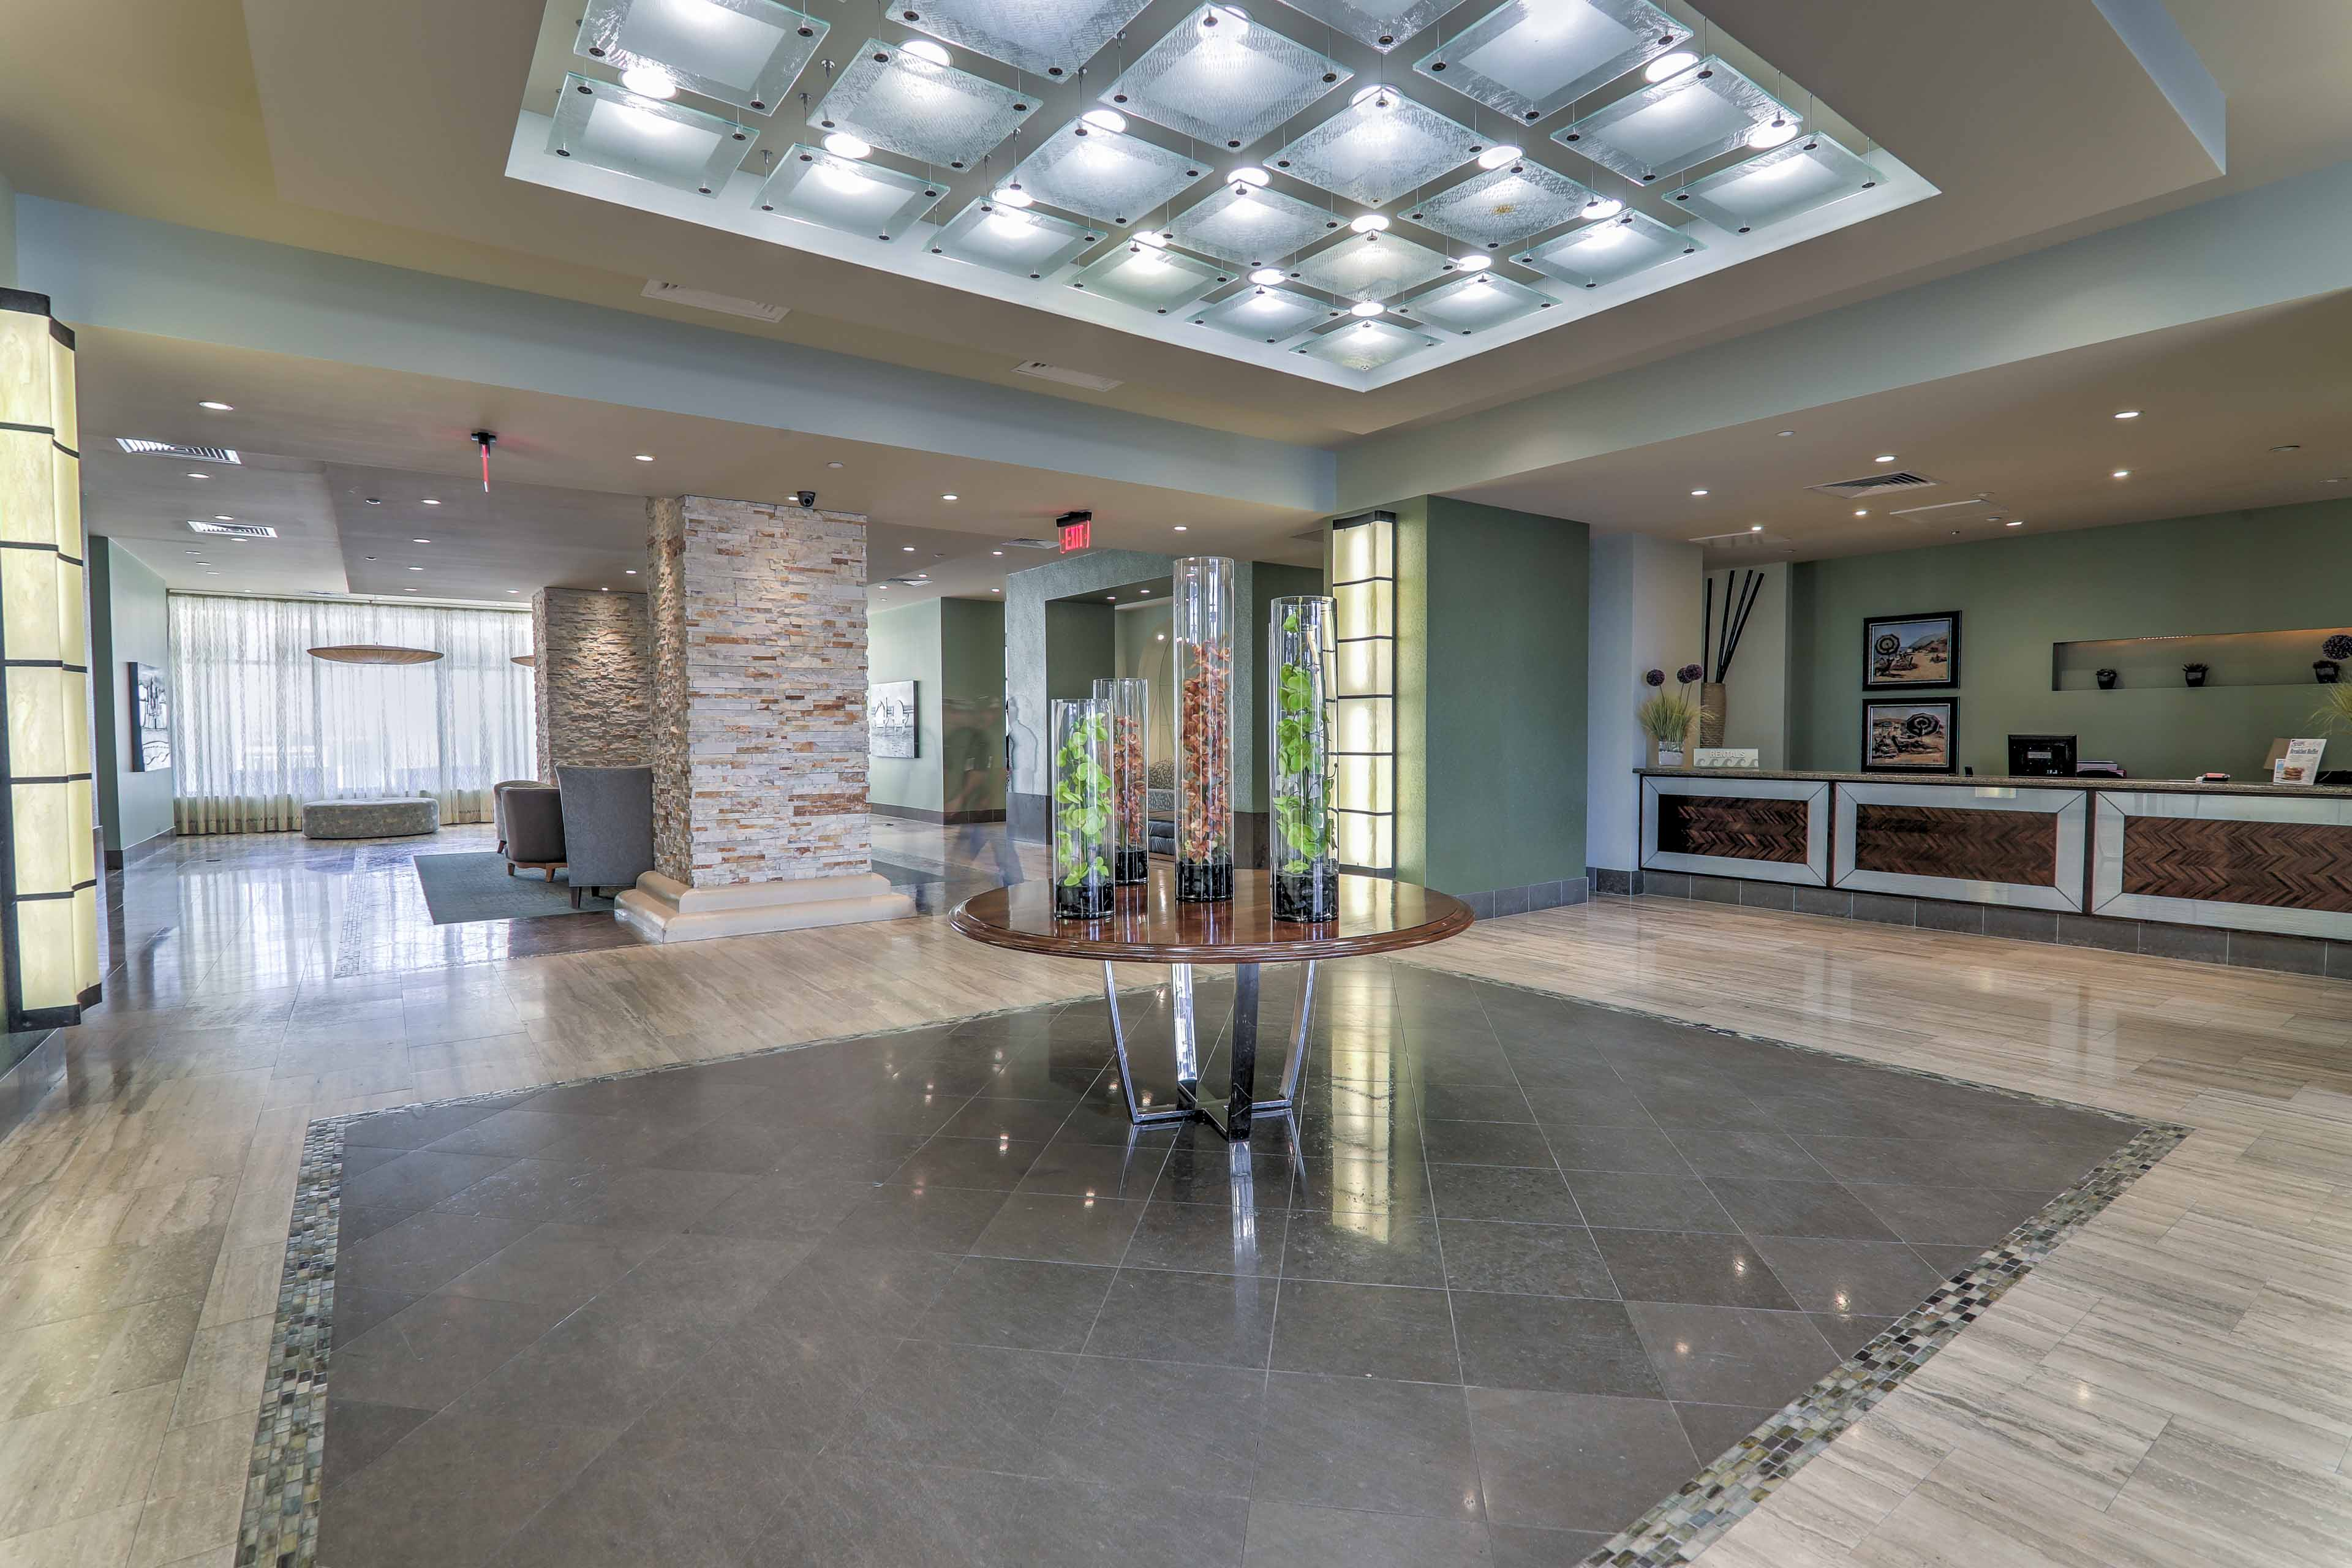 Enjoy the exclusive amenities of The Sapphire Condominiums like the spa!